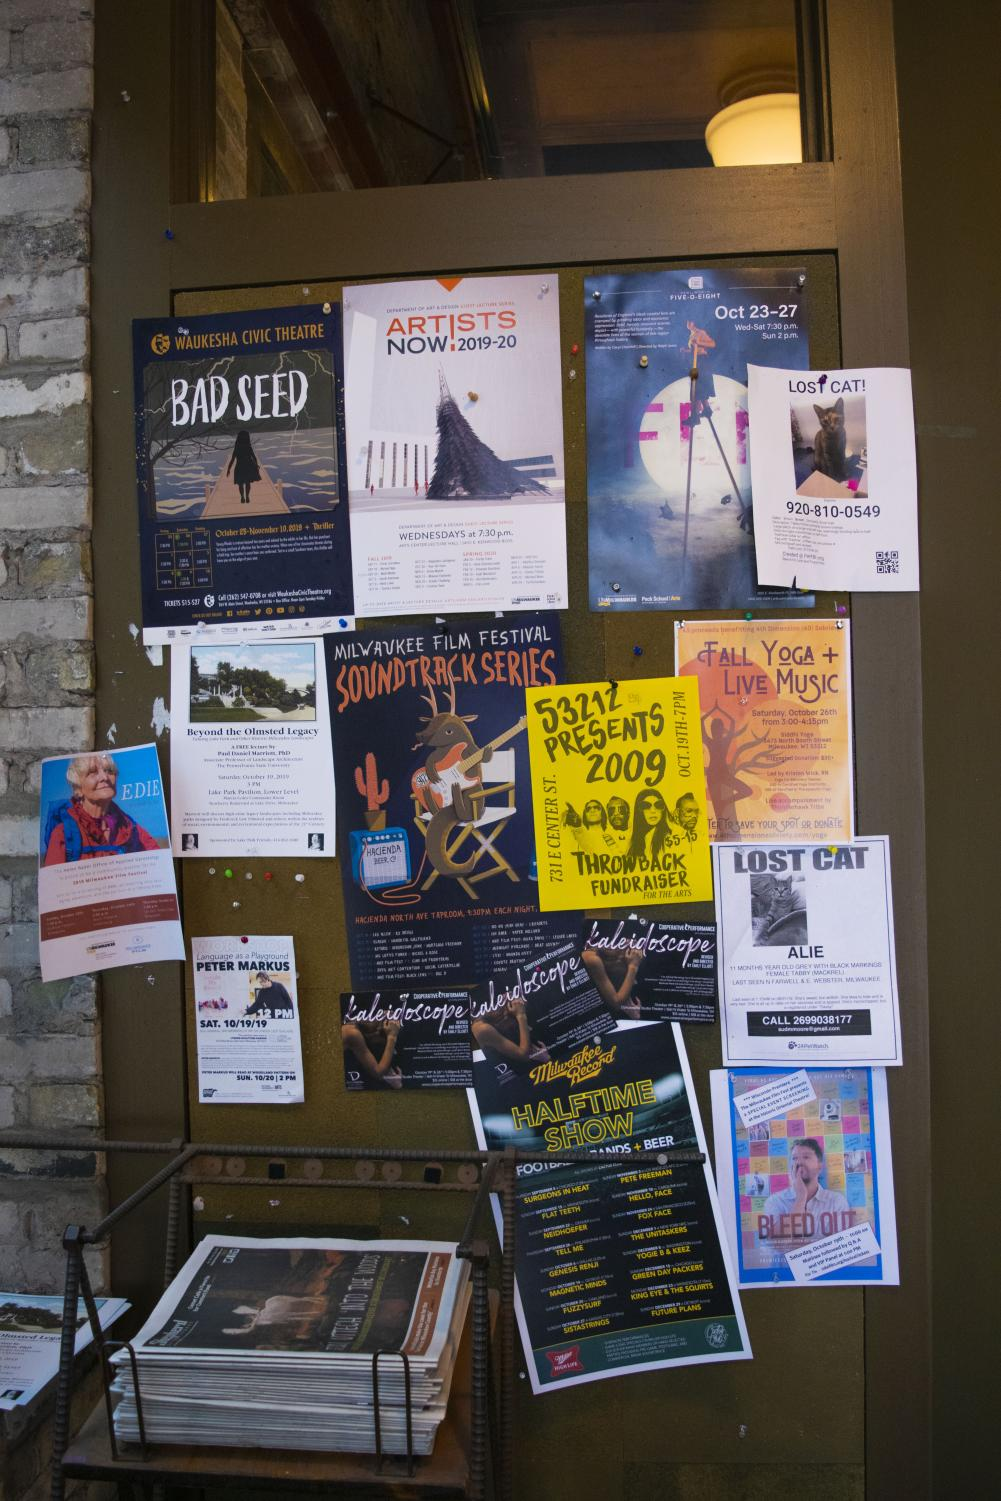 Some locations have bulletin boards and racks of flyers that provide promotional opportunities for local events.